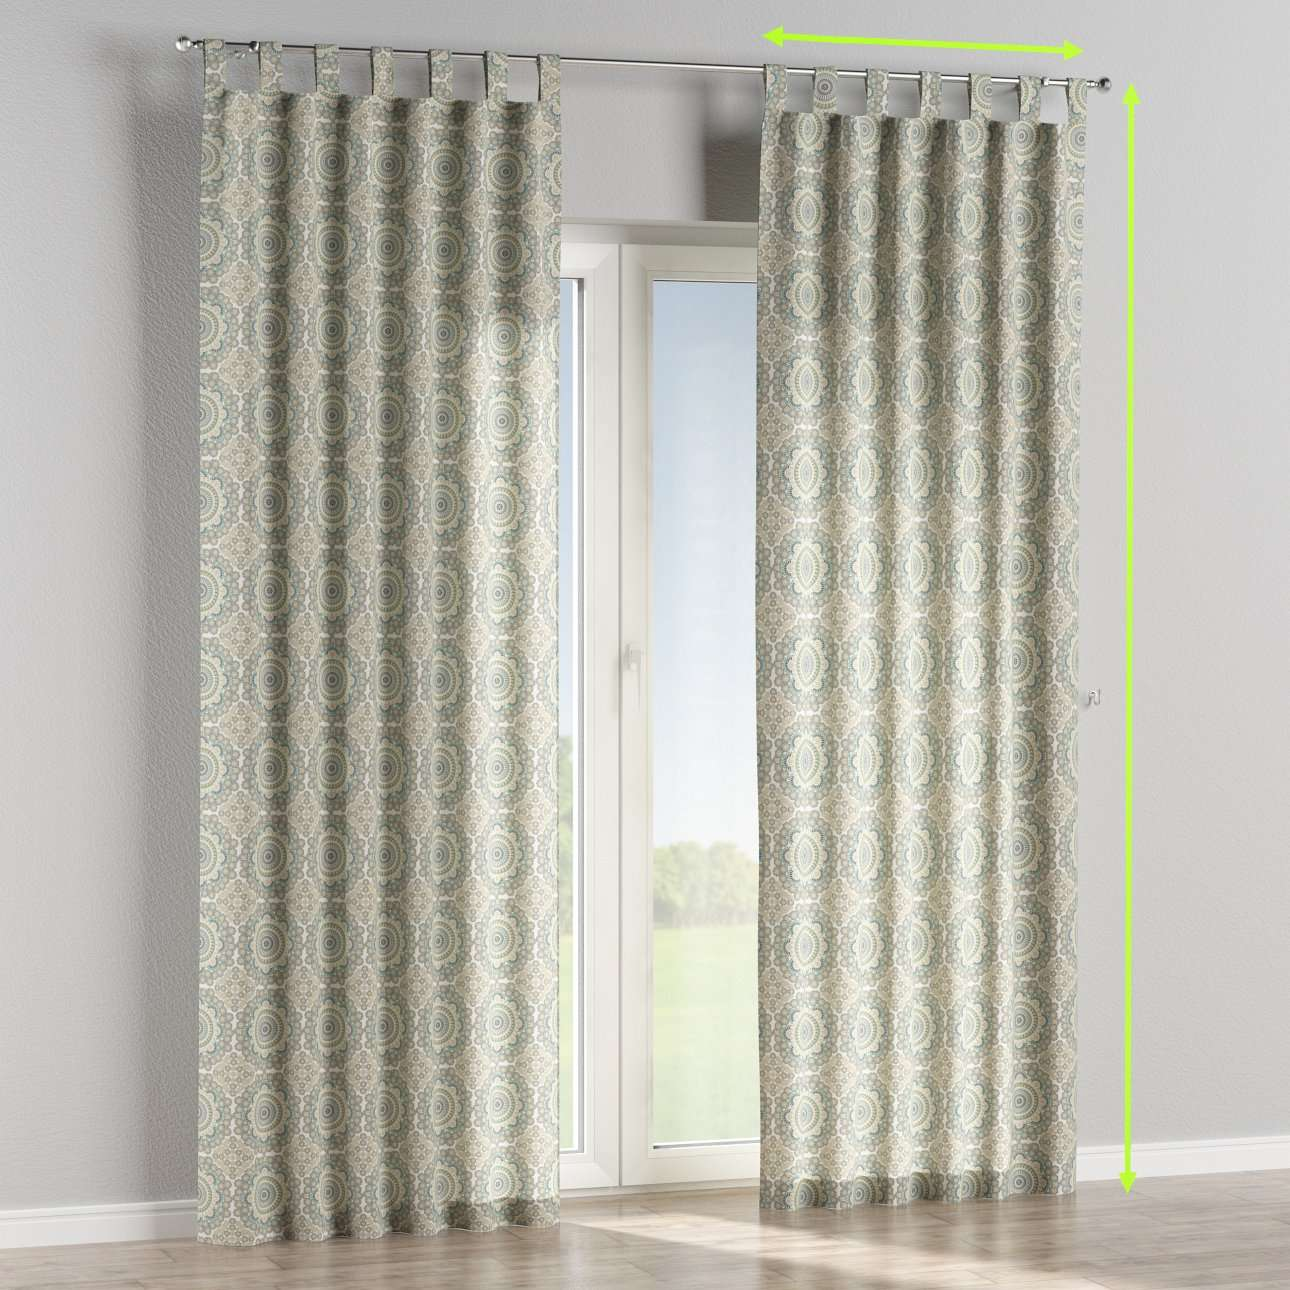 Tab top lined curtains in collection Comic Book & Geo Prints, fabric: 137-84